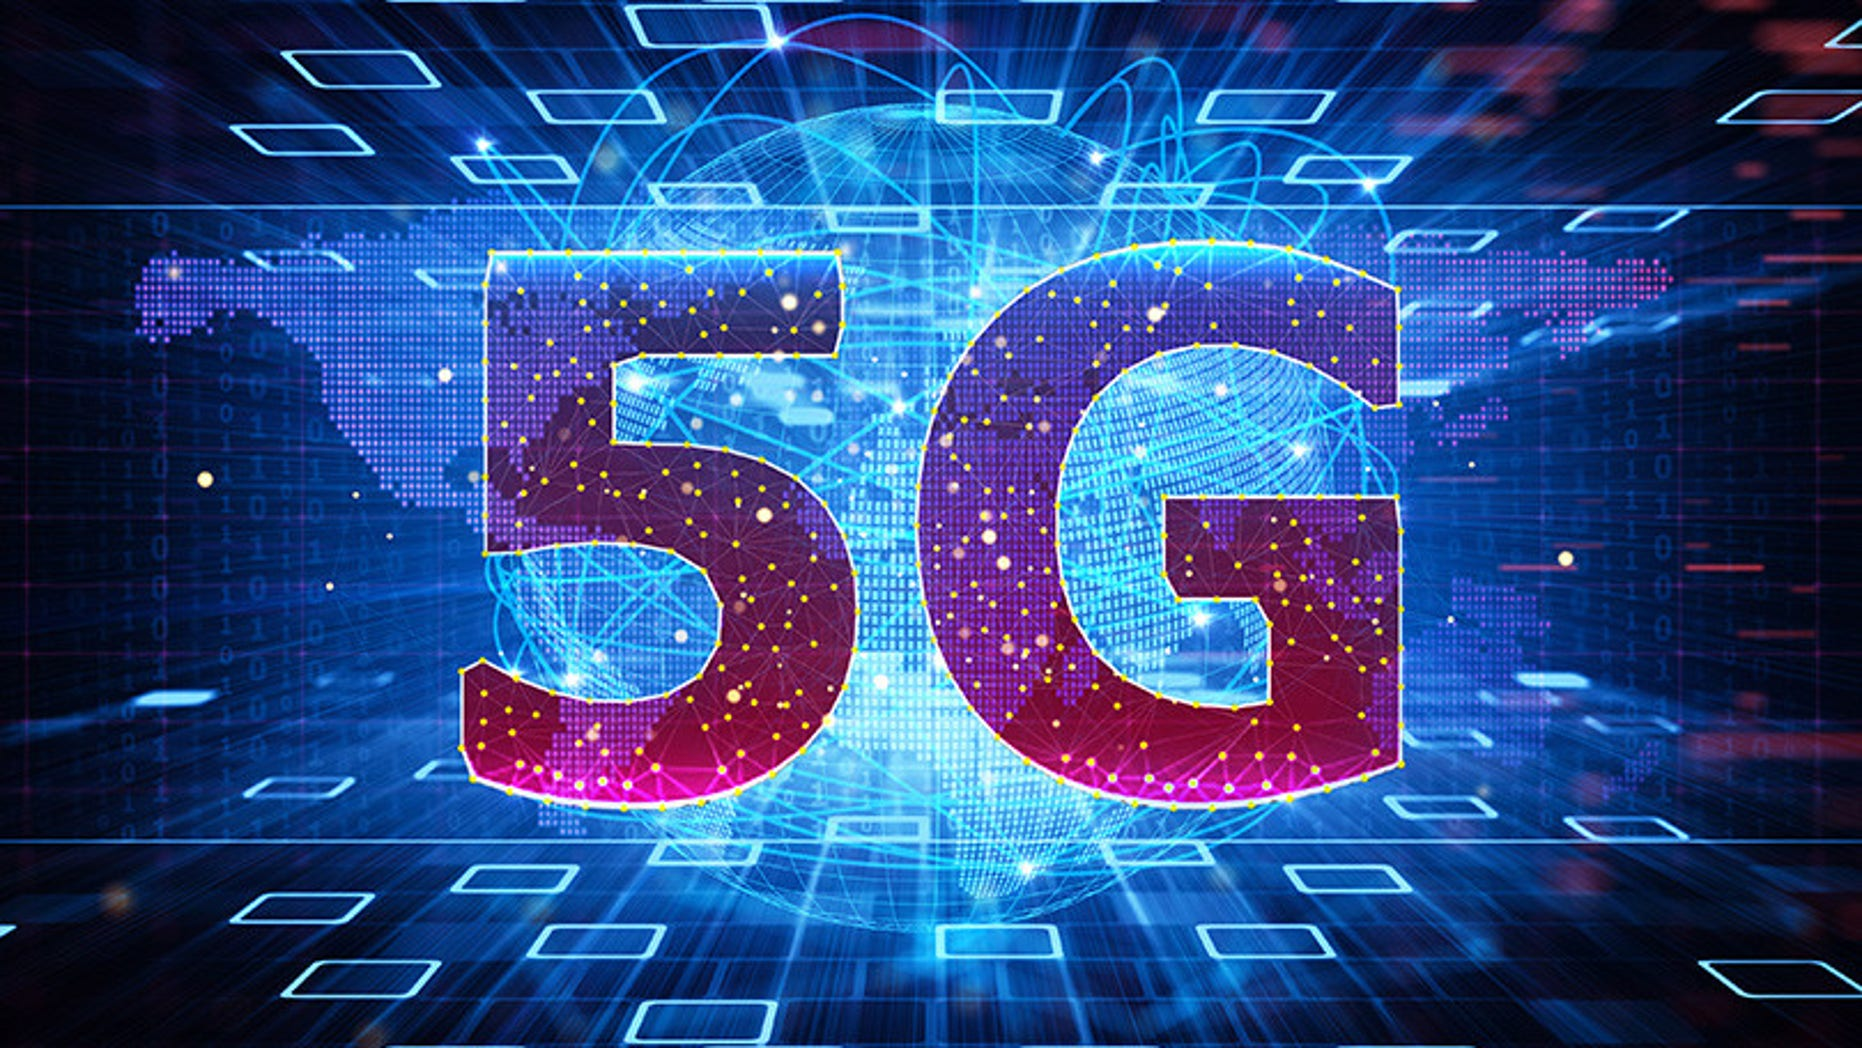 Kim Komando debunks the 5G conspiracy theory. (iStock/FNC)